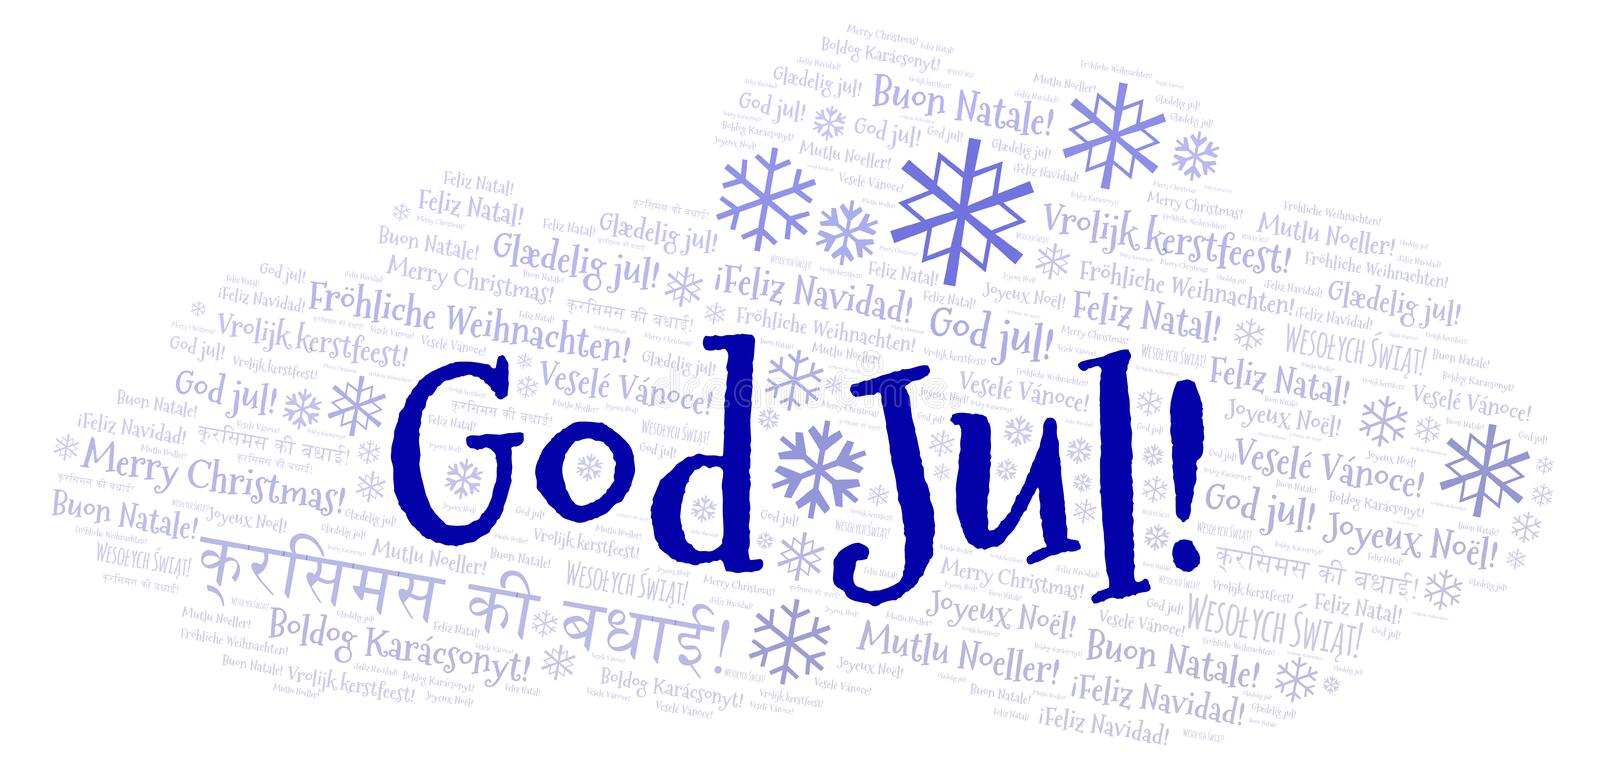 God Jul word cloud - Merry Christmas on Swedish language and other different languages. God Jul word cloud - Merry Christmas on Swedish language. International stock illustration